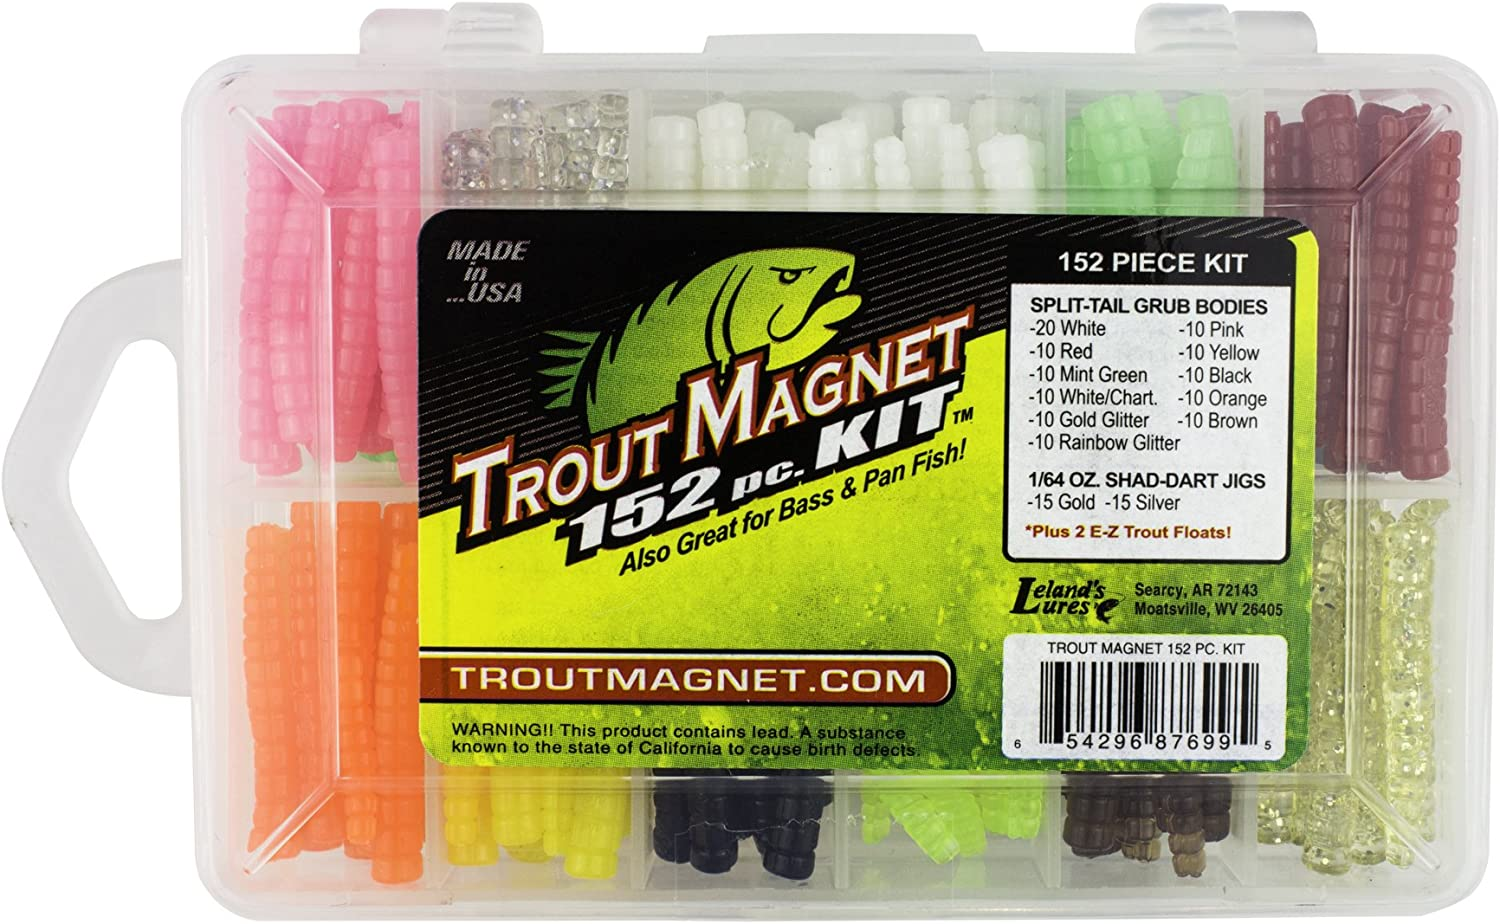 100 Crappie Magnet Split Tail Bodies Chartreuse Glitter /& Red//Chartreuse CRAPPIE